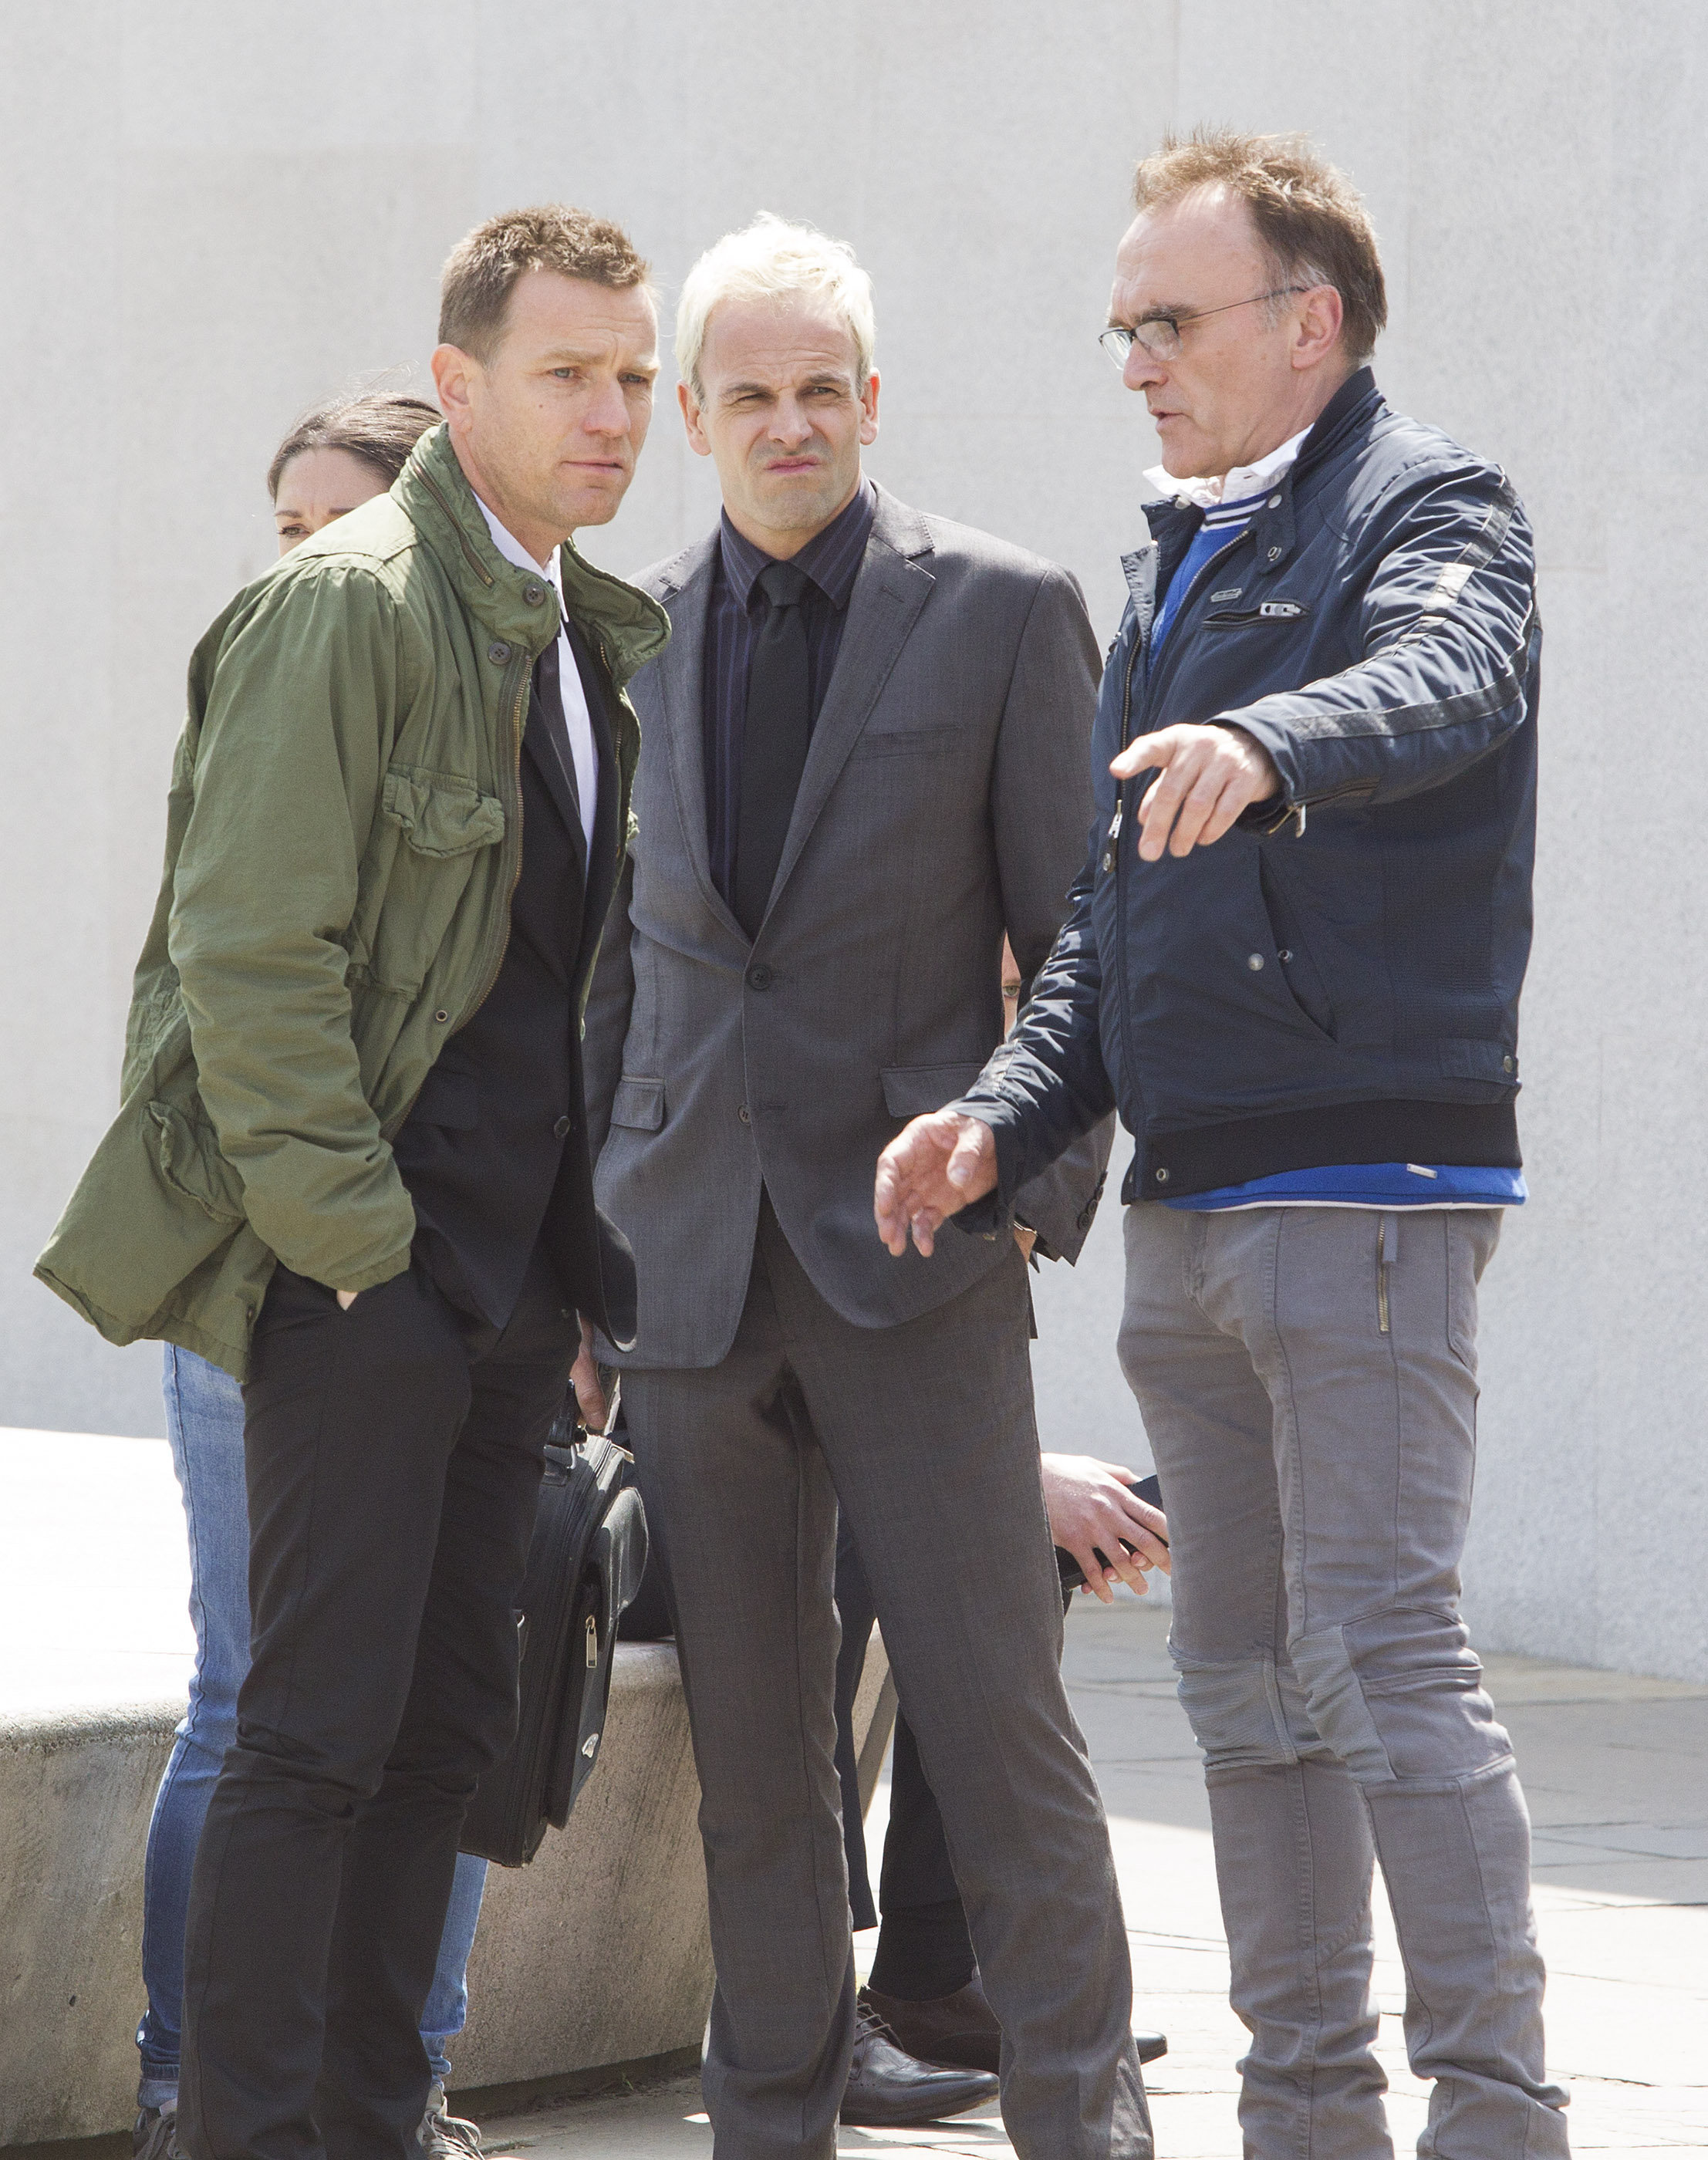 Jonny Lee Miller, Ewan McGregor and director Danny